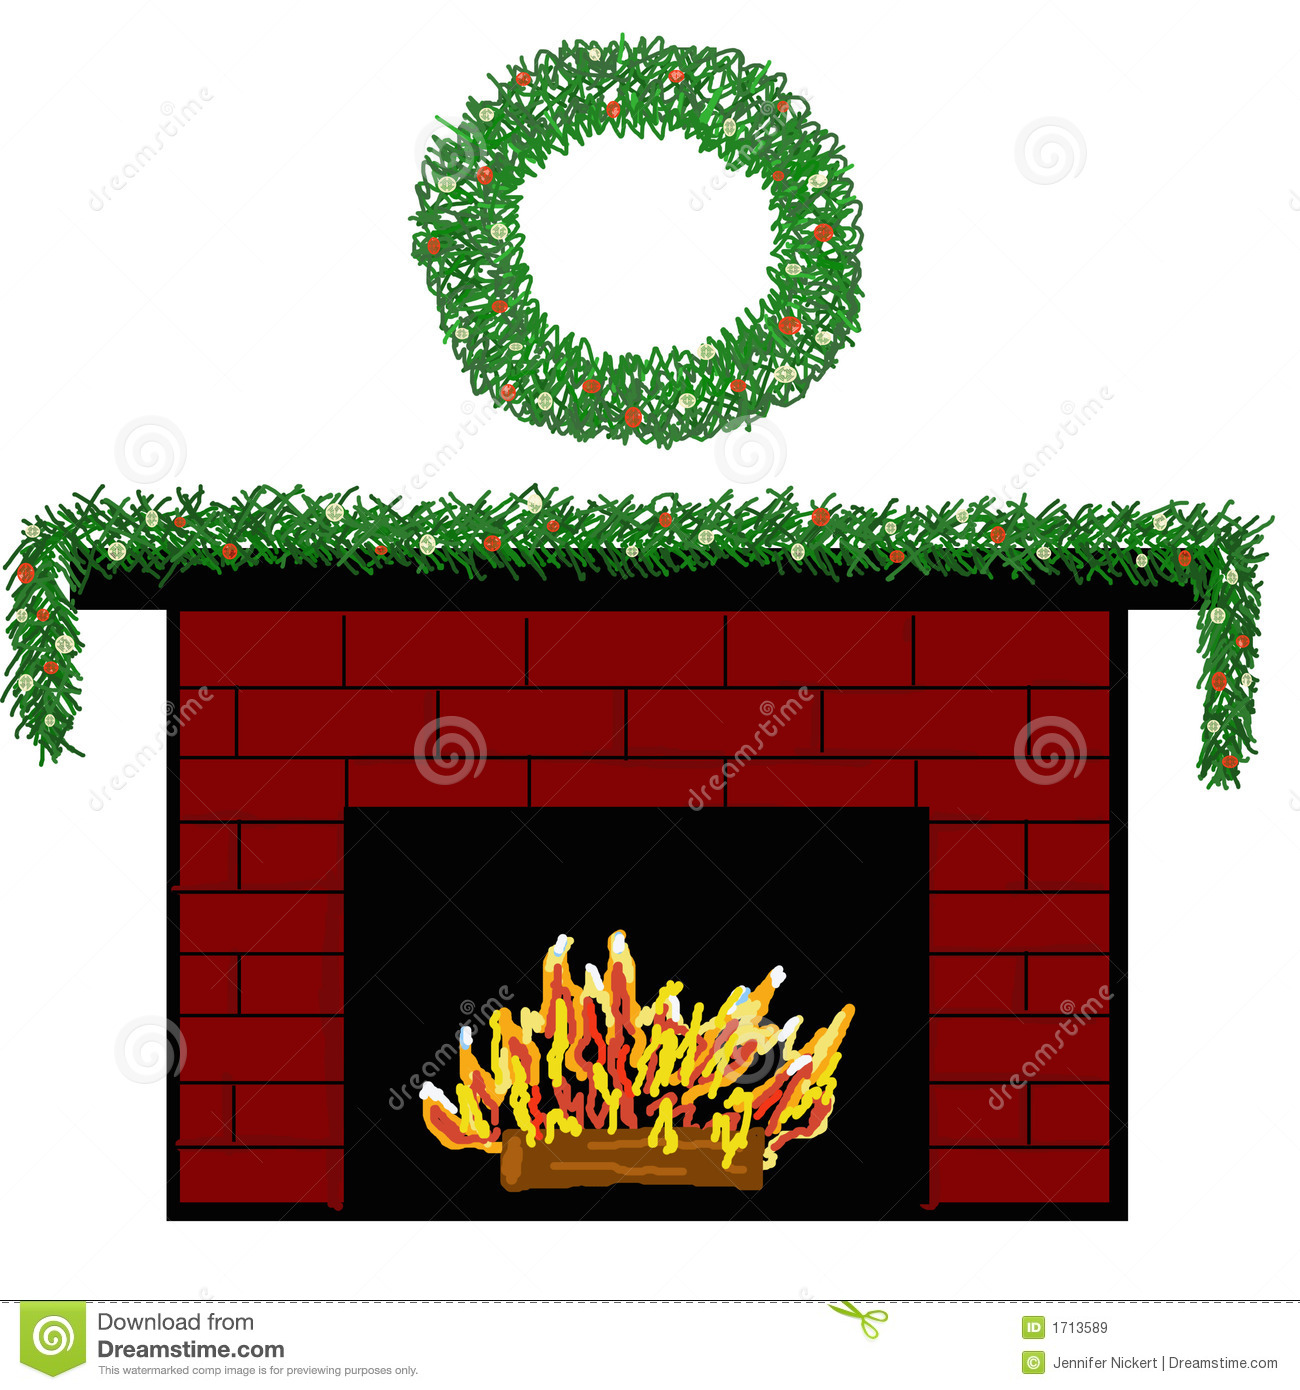 Clip art brick fireplace clipart suggest